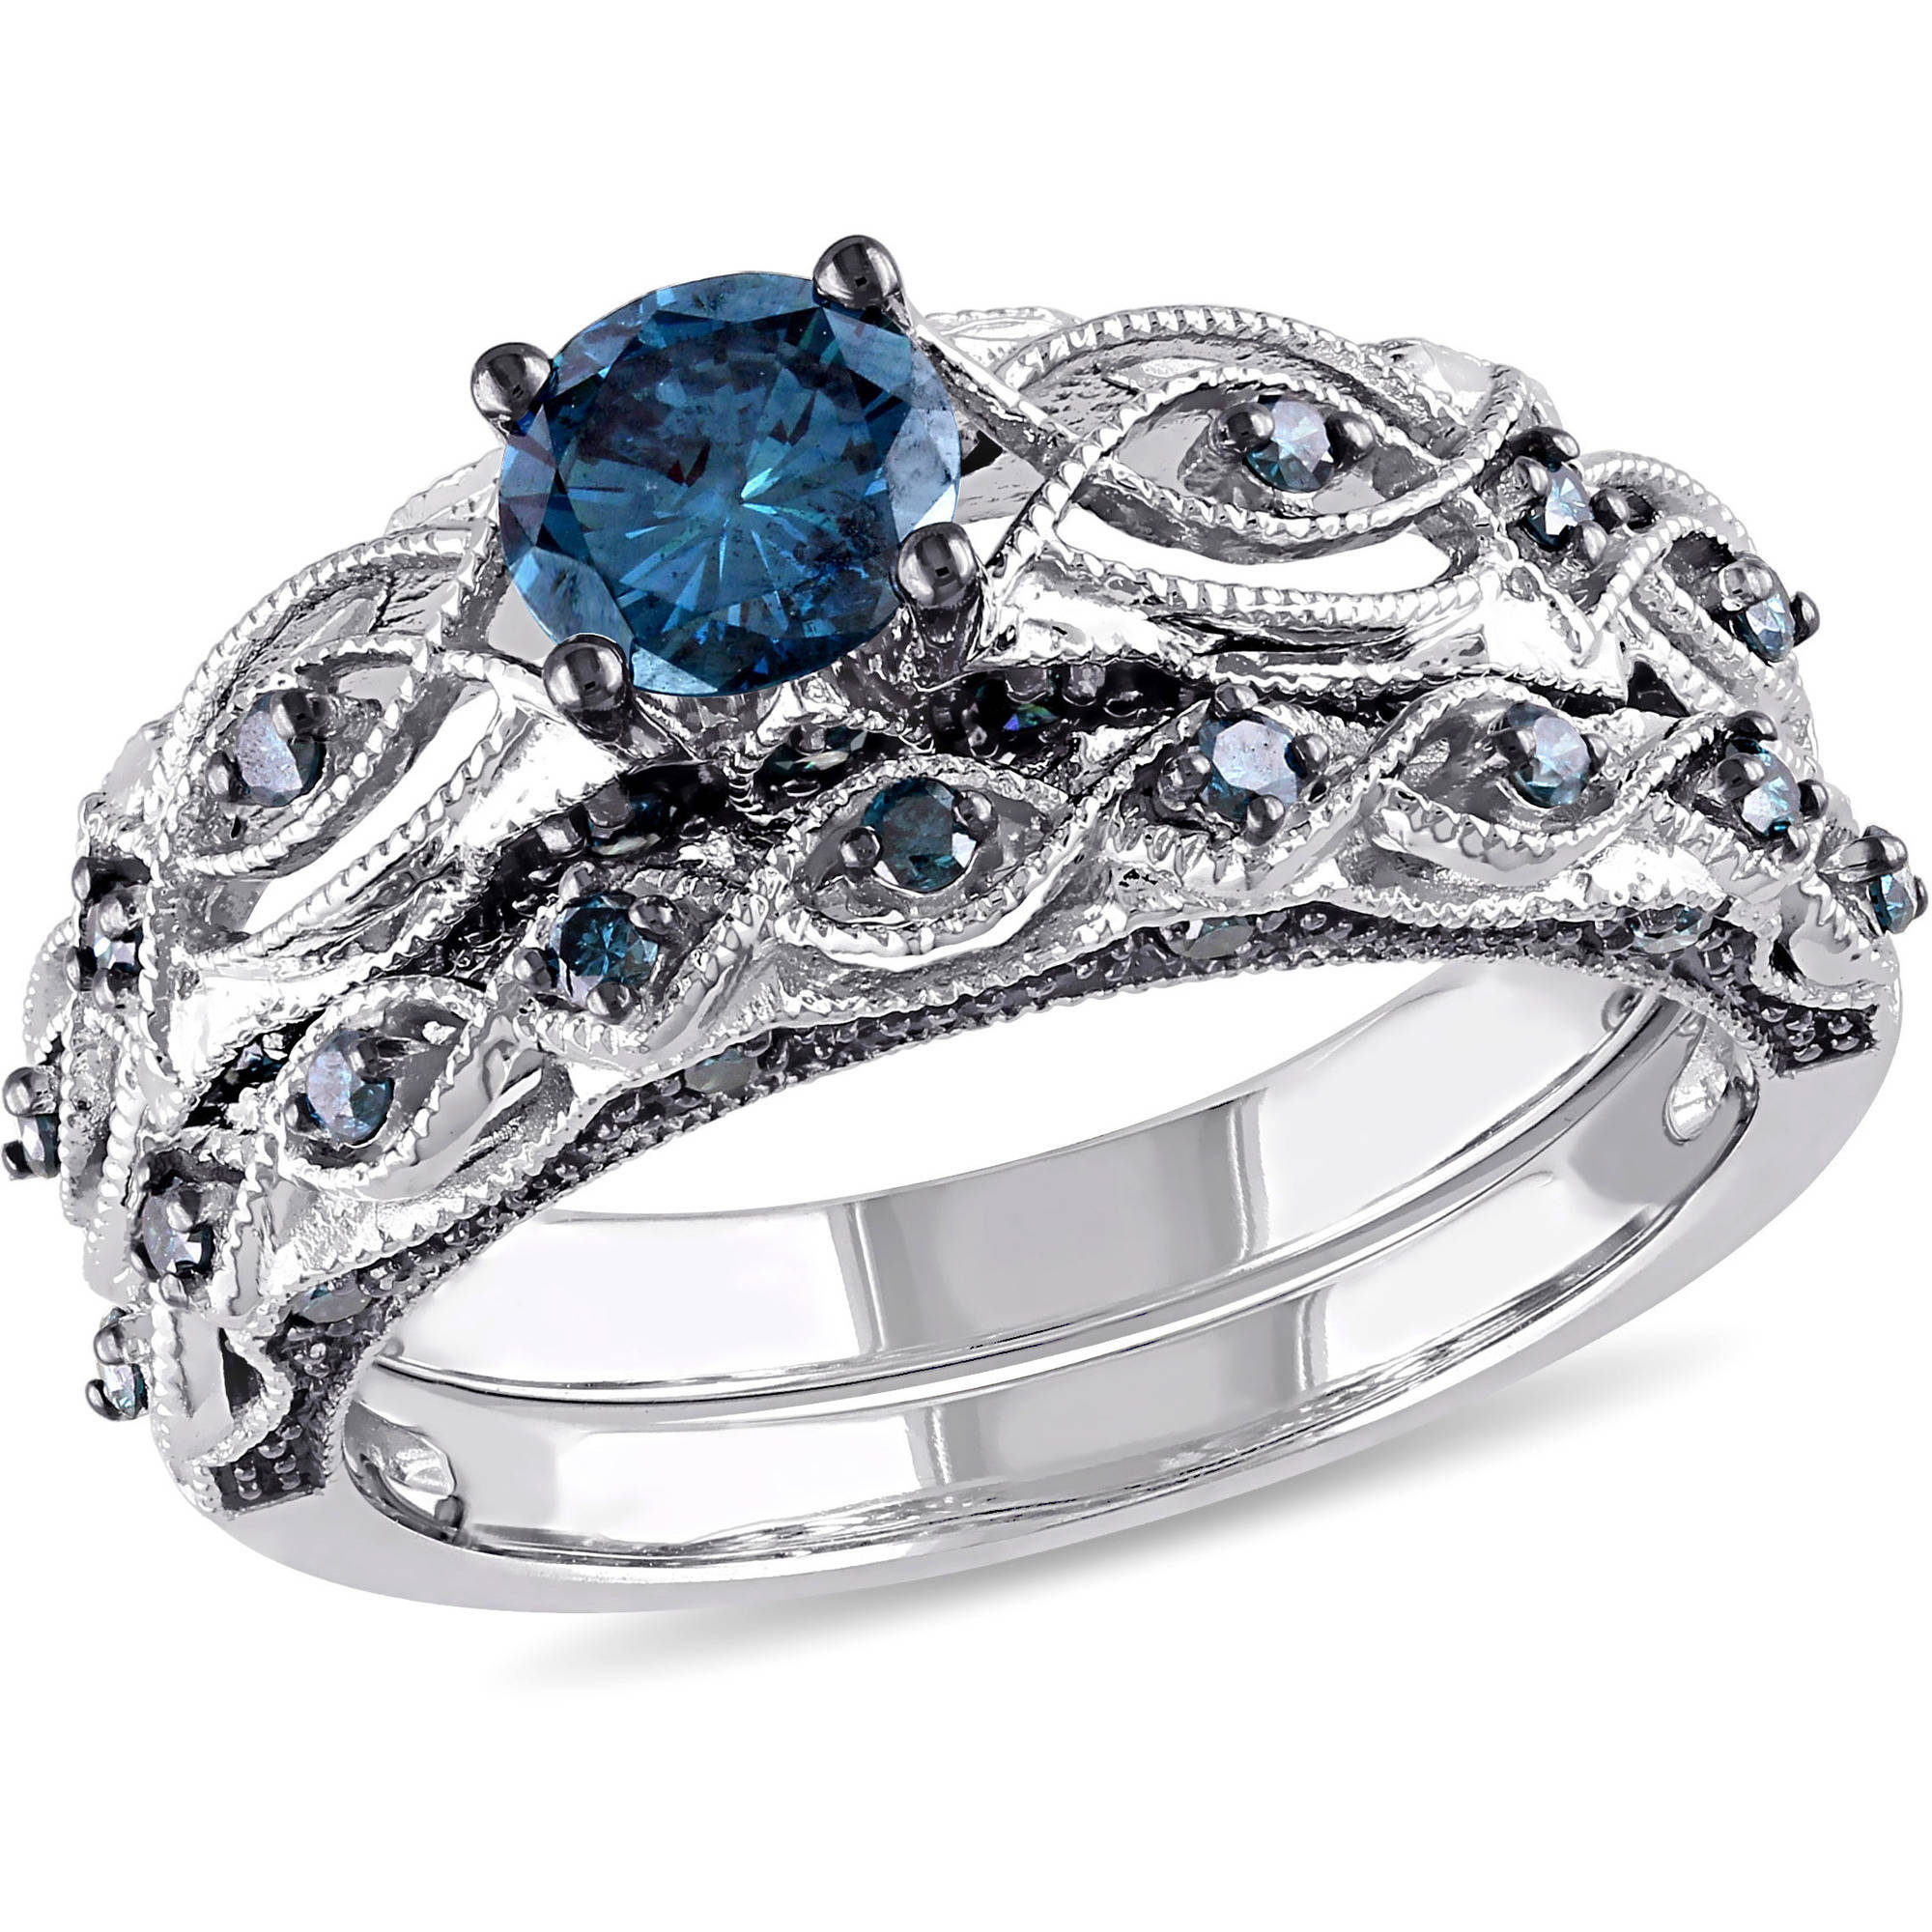 1 Carat T.W. Treated Blue Diamond 10kt White Gold Bridal Set